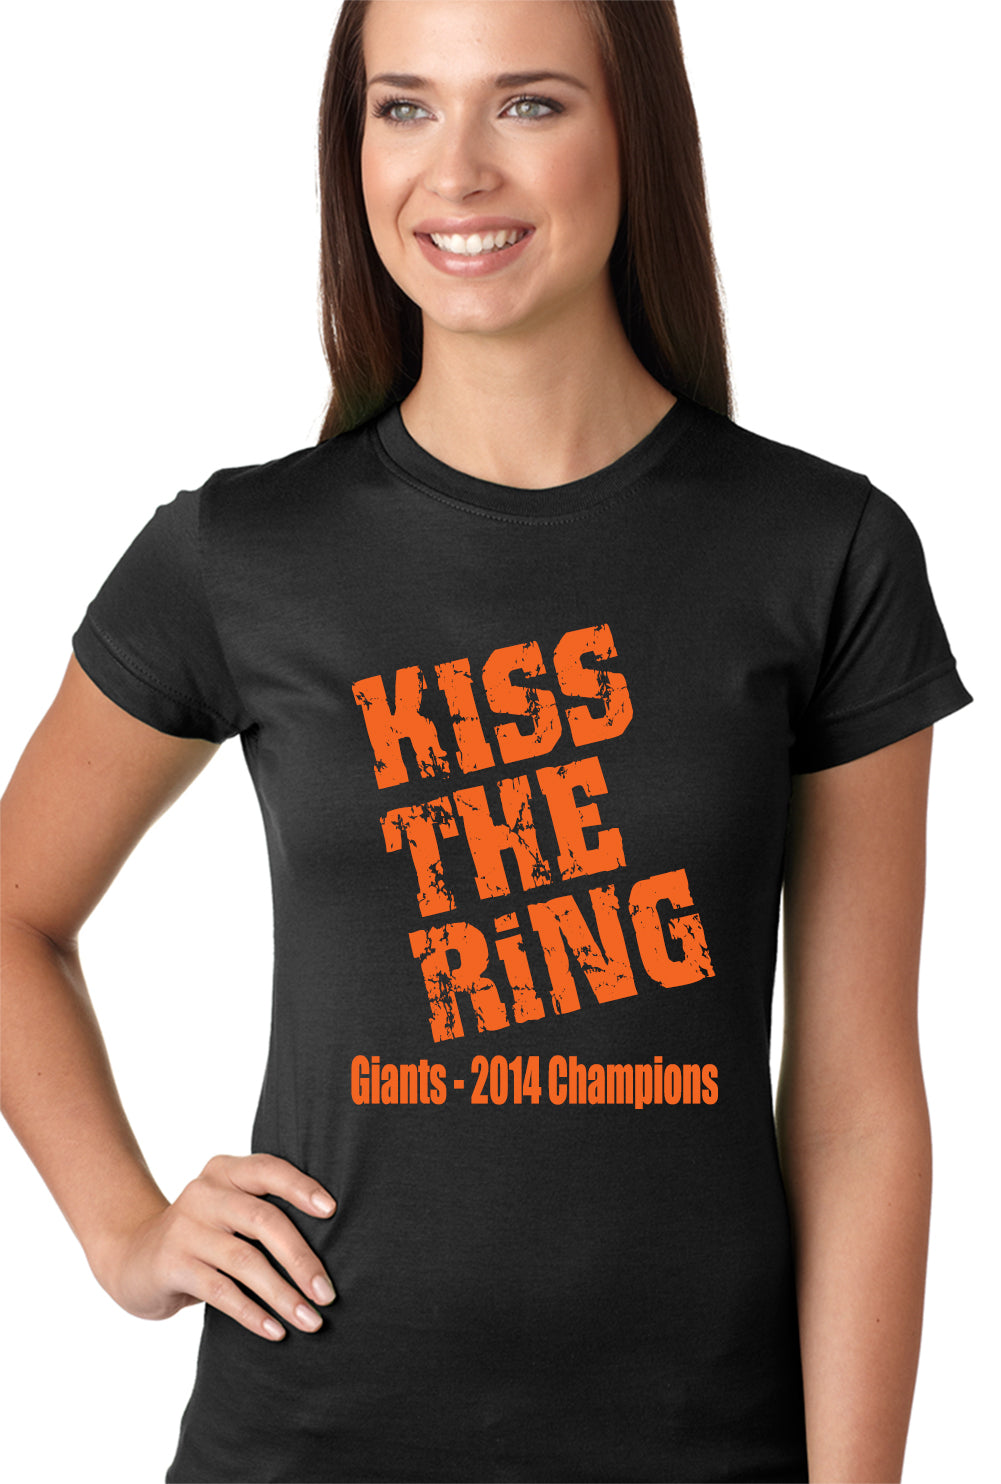 Giants Kiss The Ring 2014 Girls T-shirt